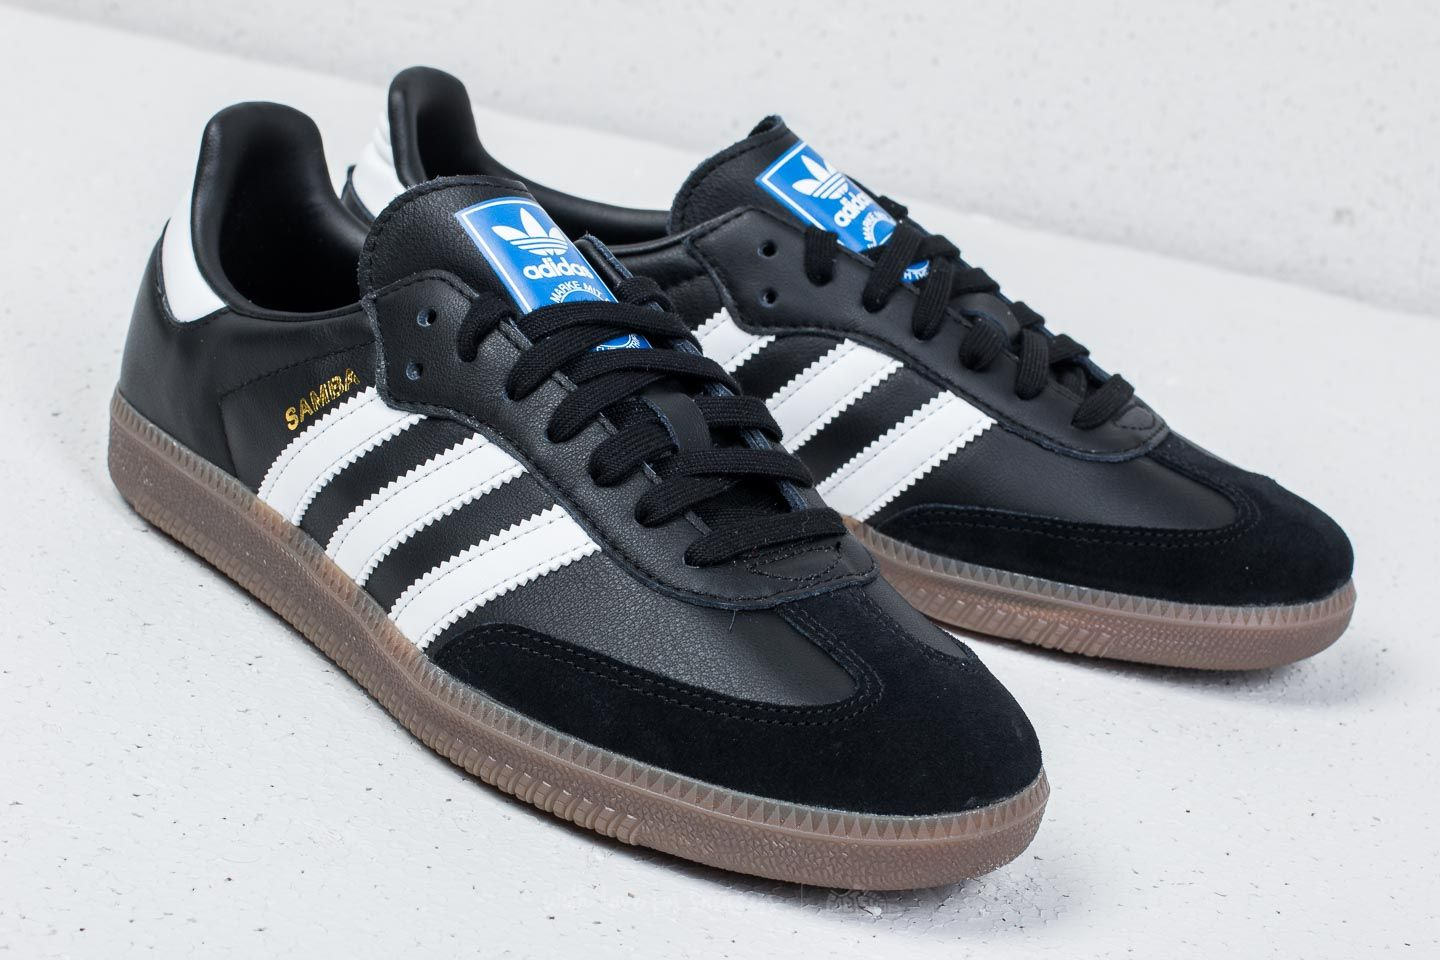 adidas Samba Og Core Black  Ftw White  Gum5 at a great price 90 € 36578be81